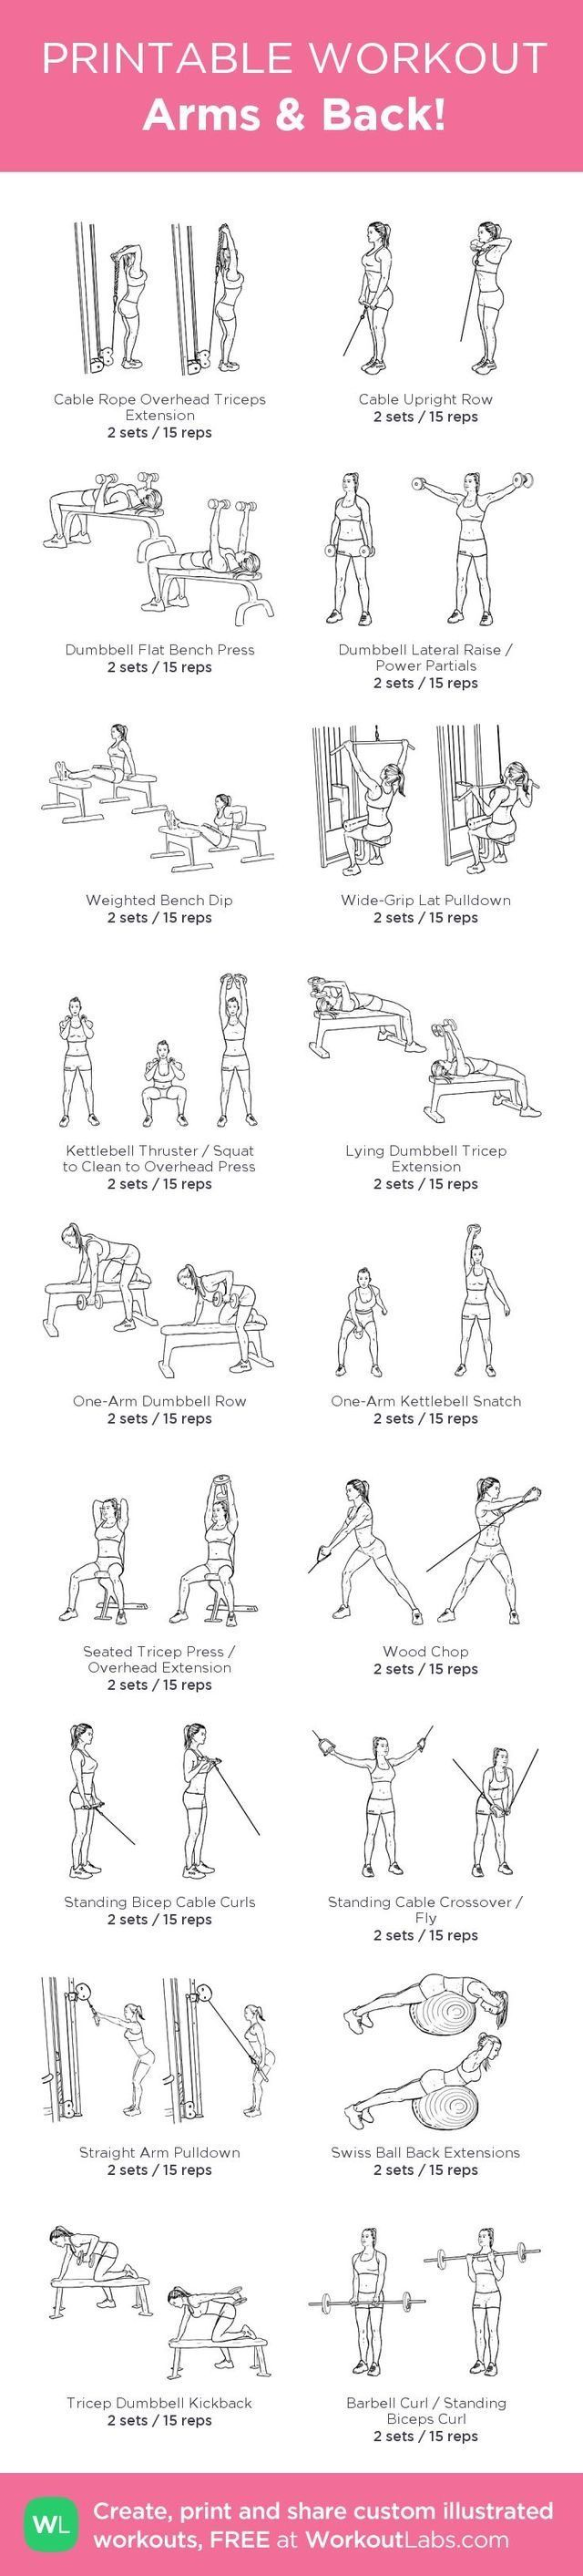 Arms and back workouts